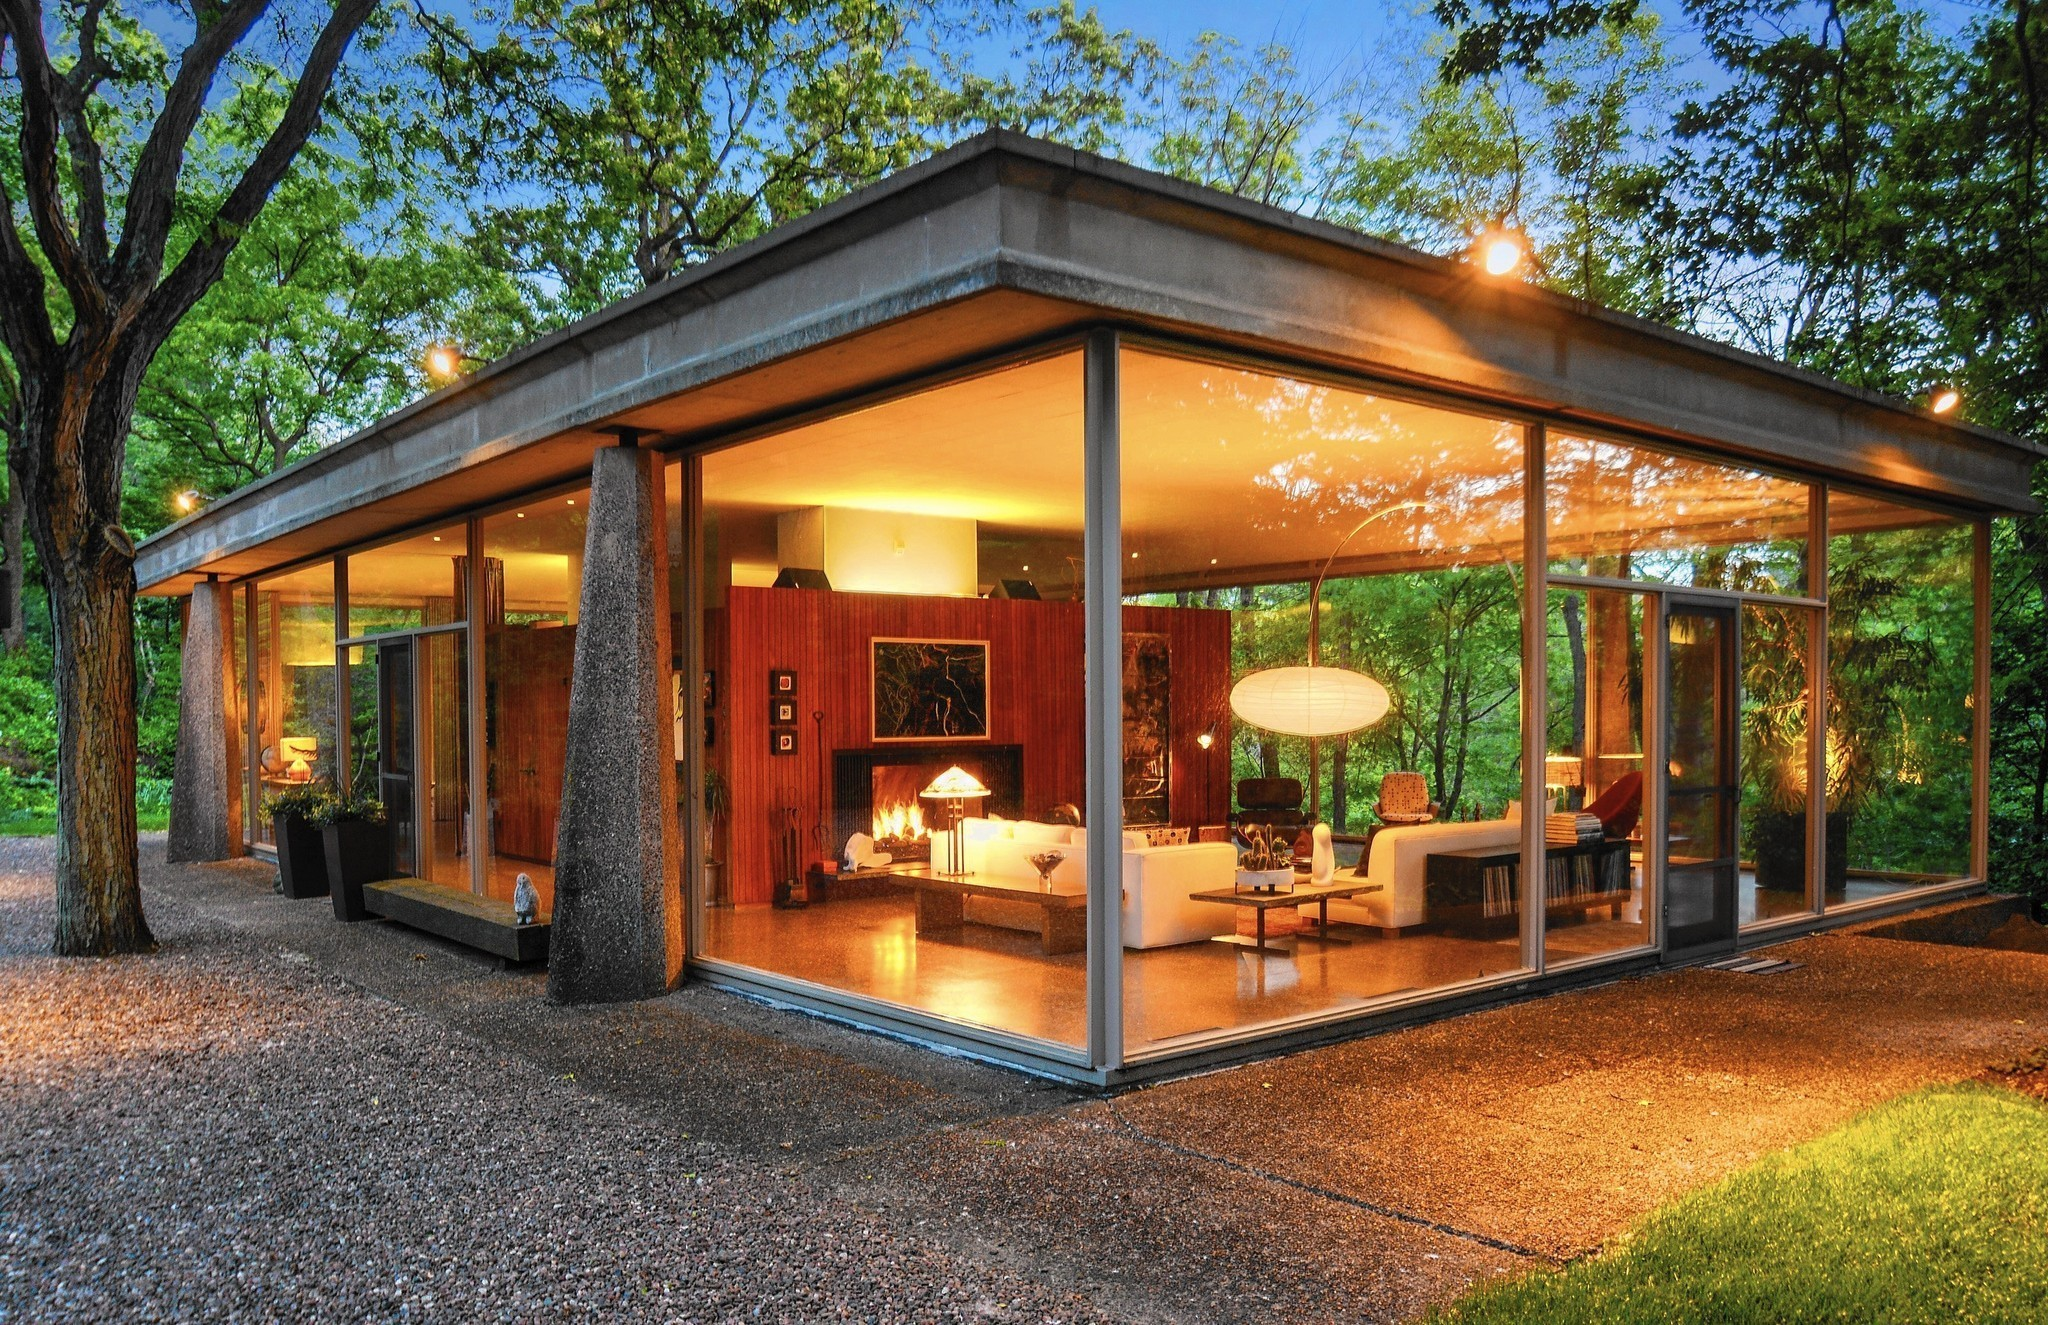 Van der rohe protege designed 39 glass house 39 for sale daily southtown - Designs in glasses for house decoration ...